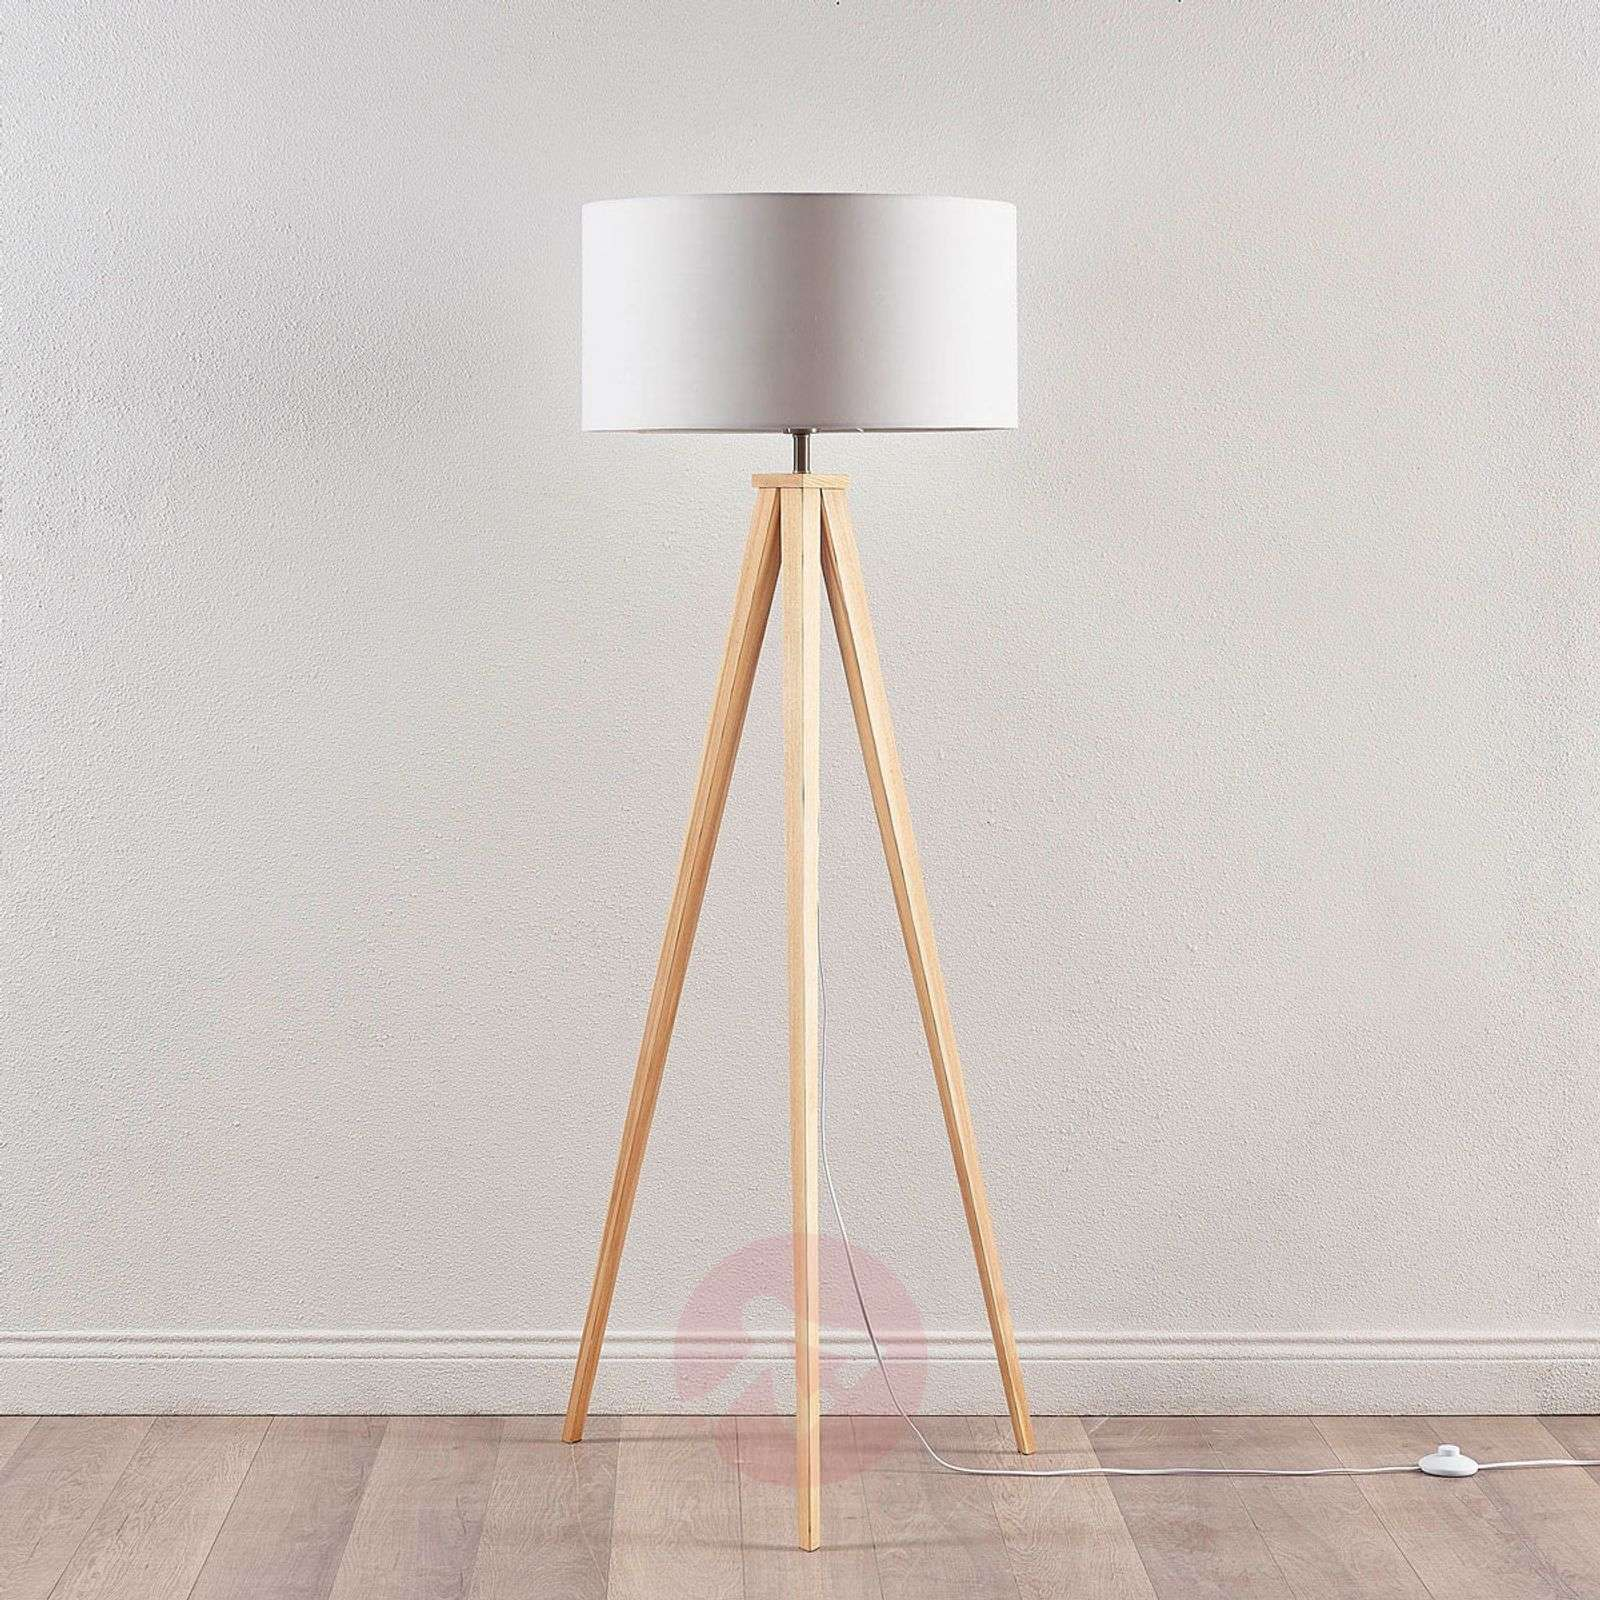 ... Tripod Wooden Floor Lamp Mya With Wooden Lampshade 9621329 01 ...